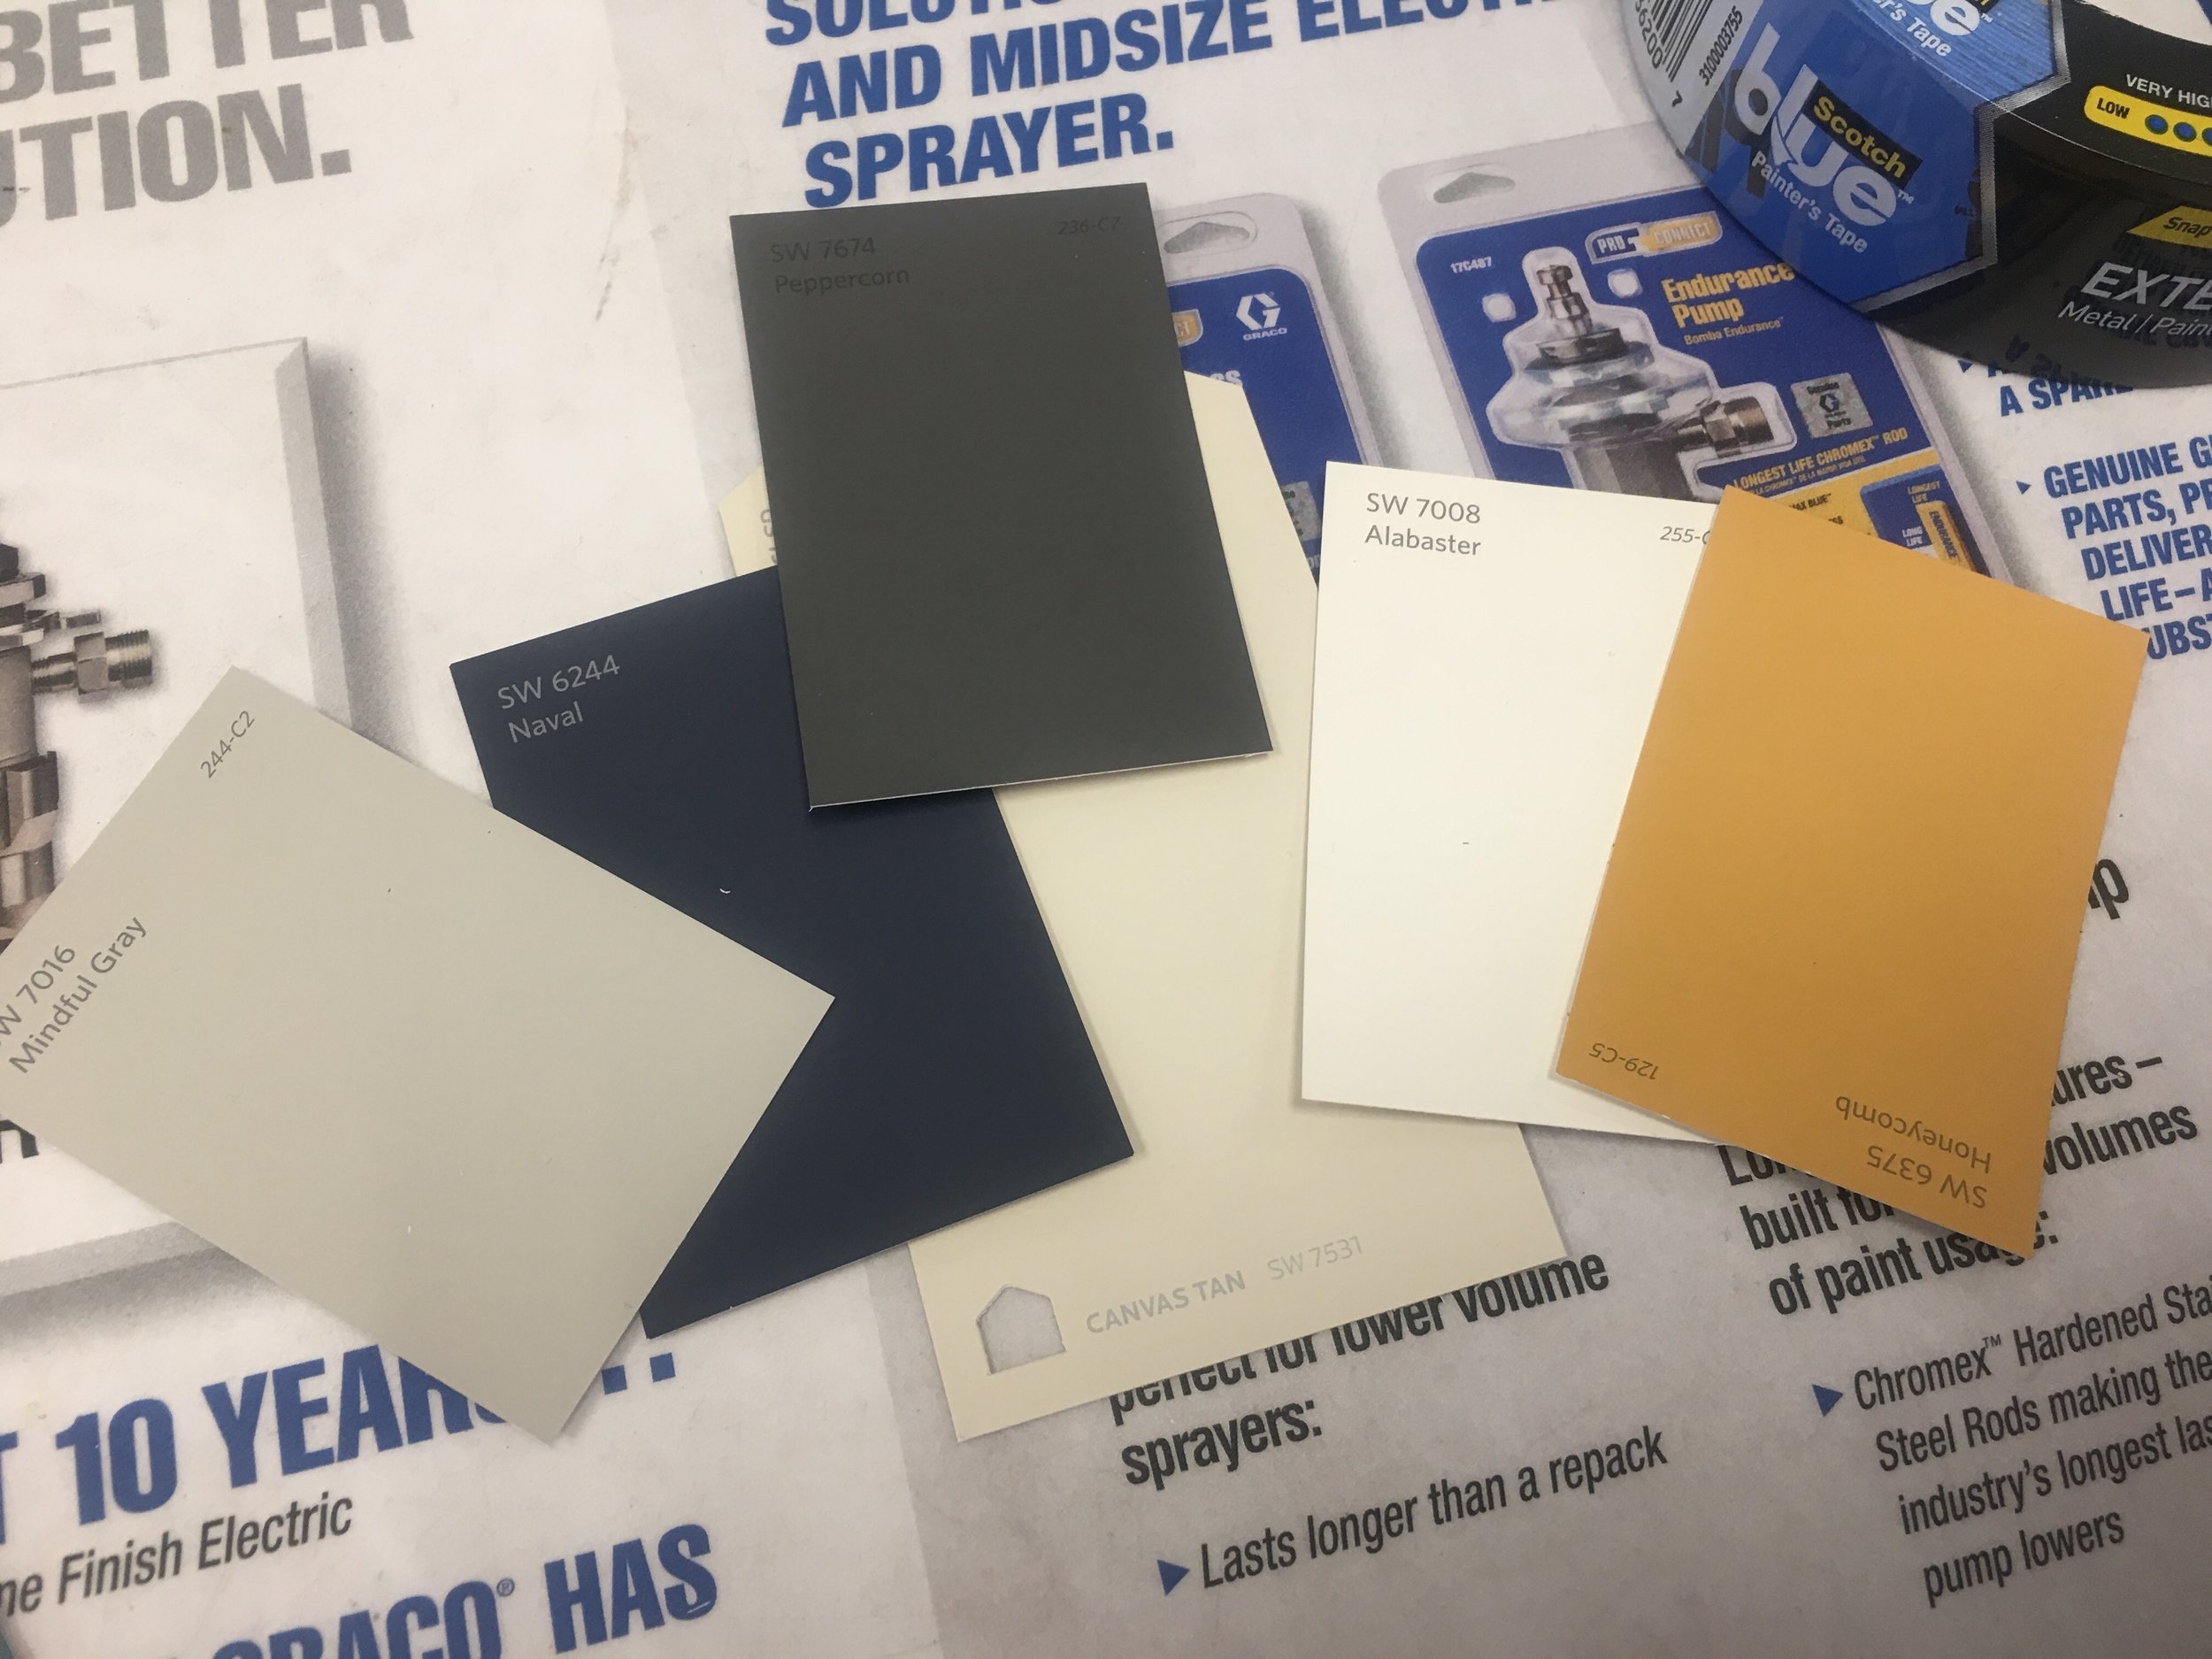 All Sherwin Williams paint colors - Mindful Gray, Naval, Peppercorn, Alabaster & Honeycomb.